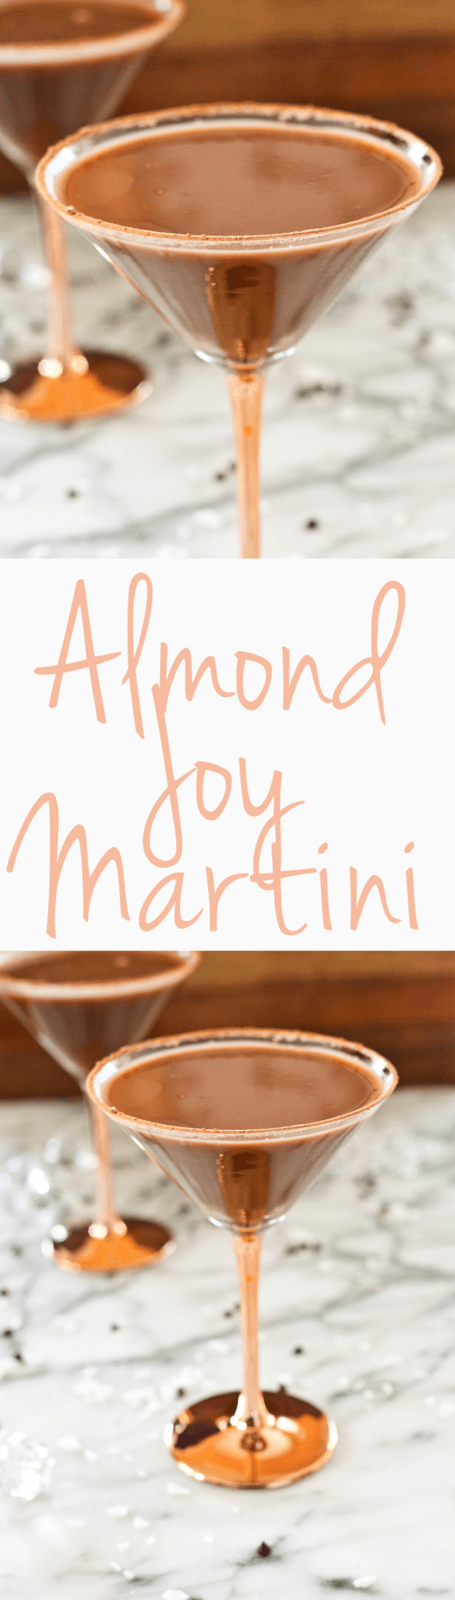 A rich and nutty Almond Joy Martini with chocolate coconut water, vodka and a splash of amaretto. It's perfect for holiday parties and a tad healthier since it's made with coconut water.